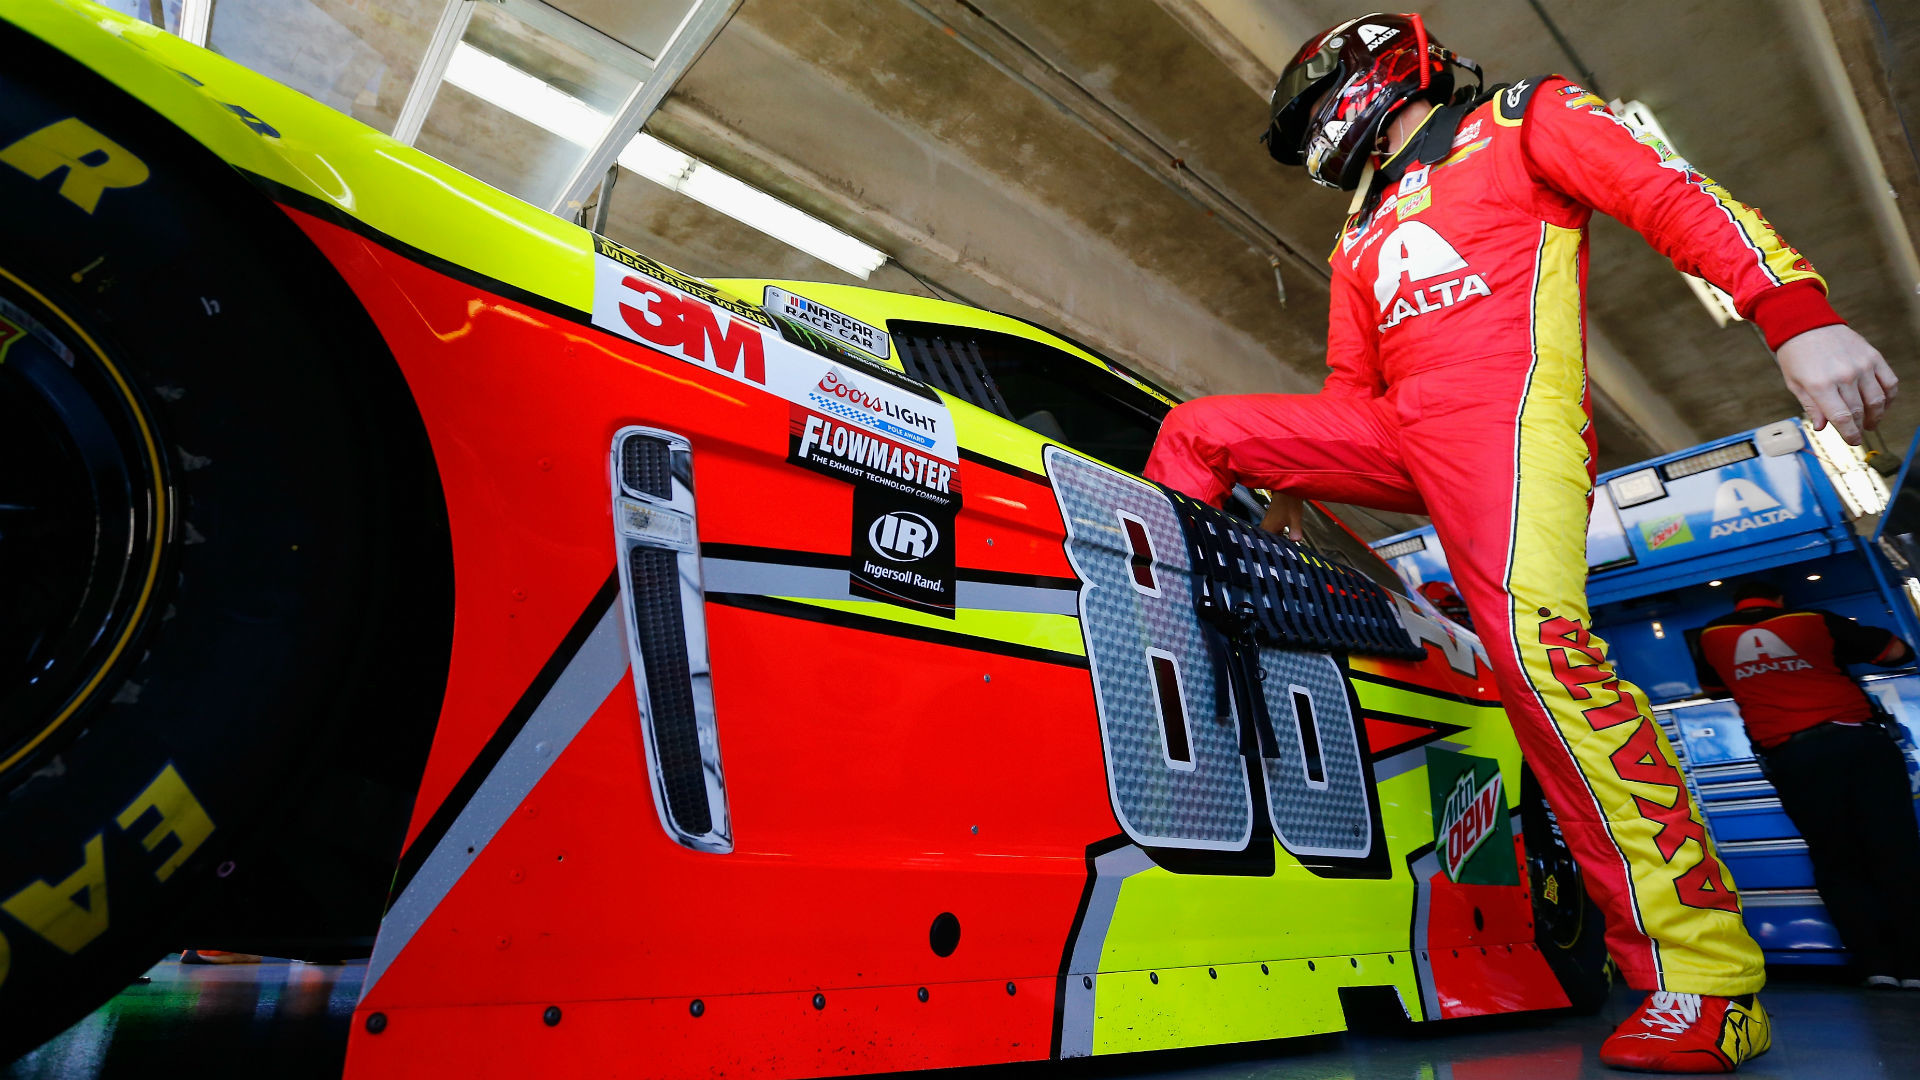 Dale Earnhardt Jr.'s race ends at Pocono after rookie mistake — blown  transmission   NASCAR   Sporting News